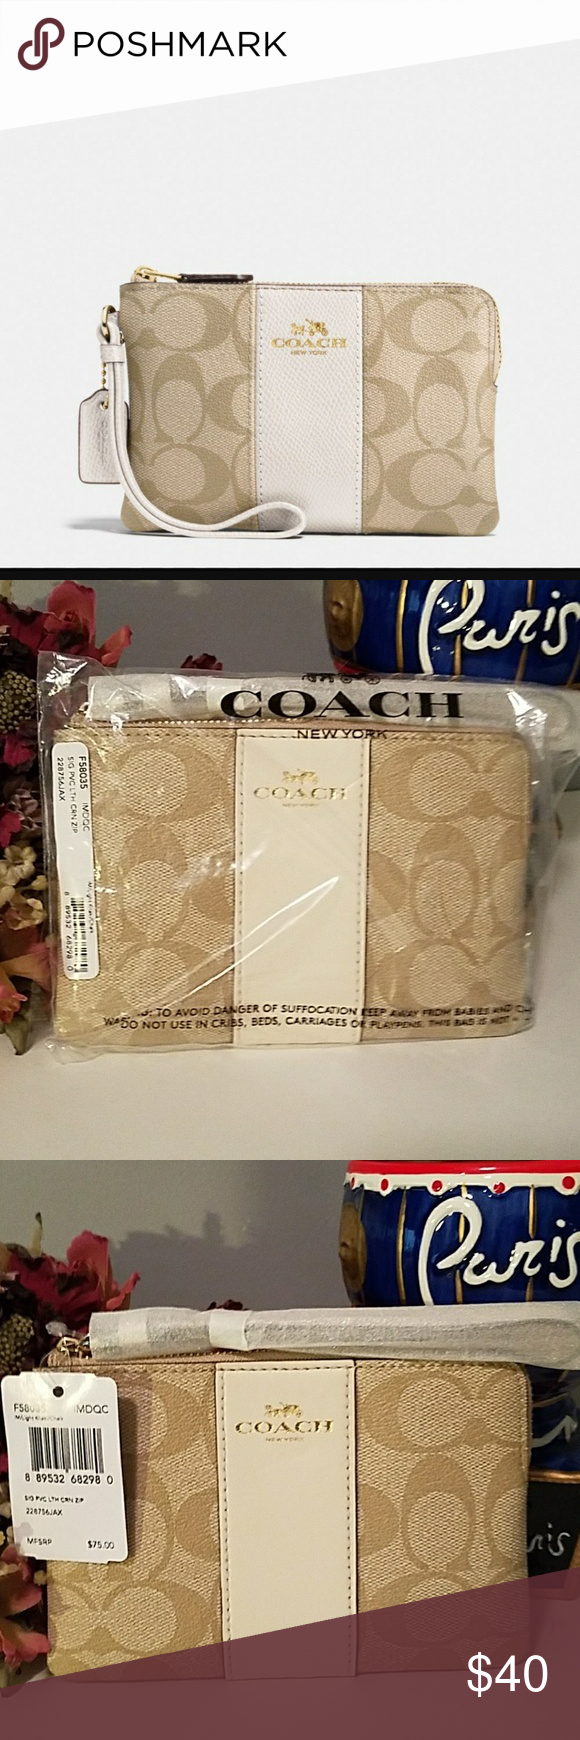 ae4cff4b4f1a AUTHENTIC COACH WRISTLET AUTHENTIC COACH CORNER ZIP WRISTLET TAN WITH OFF  WHITE LEATHER STRIPE THIS IS